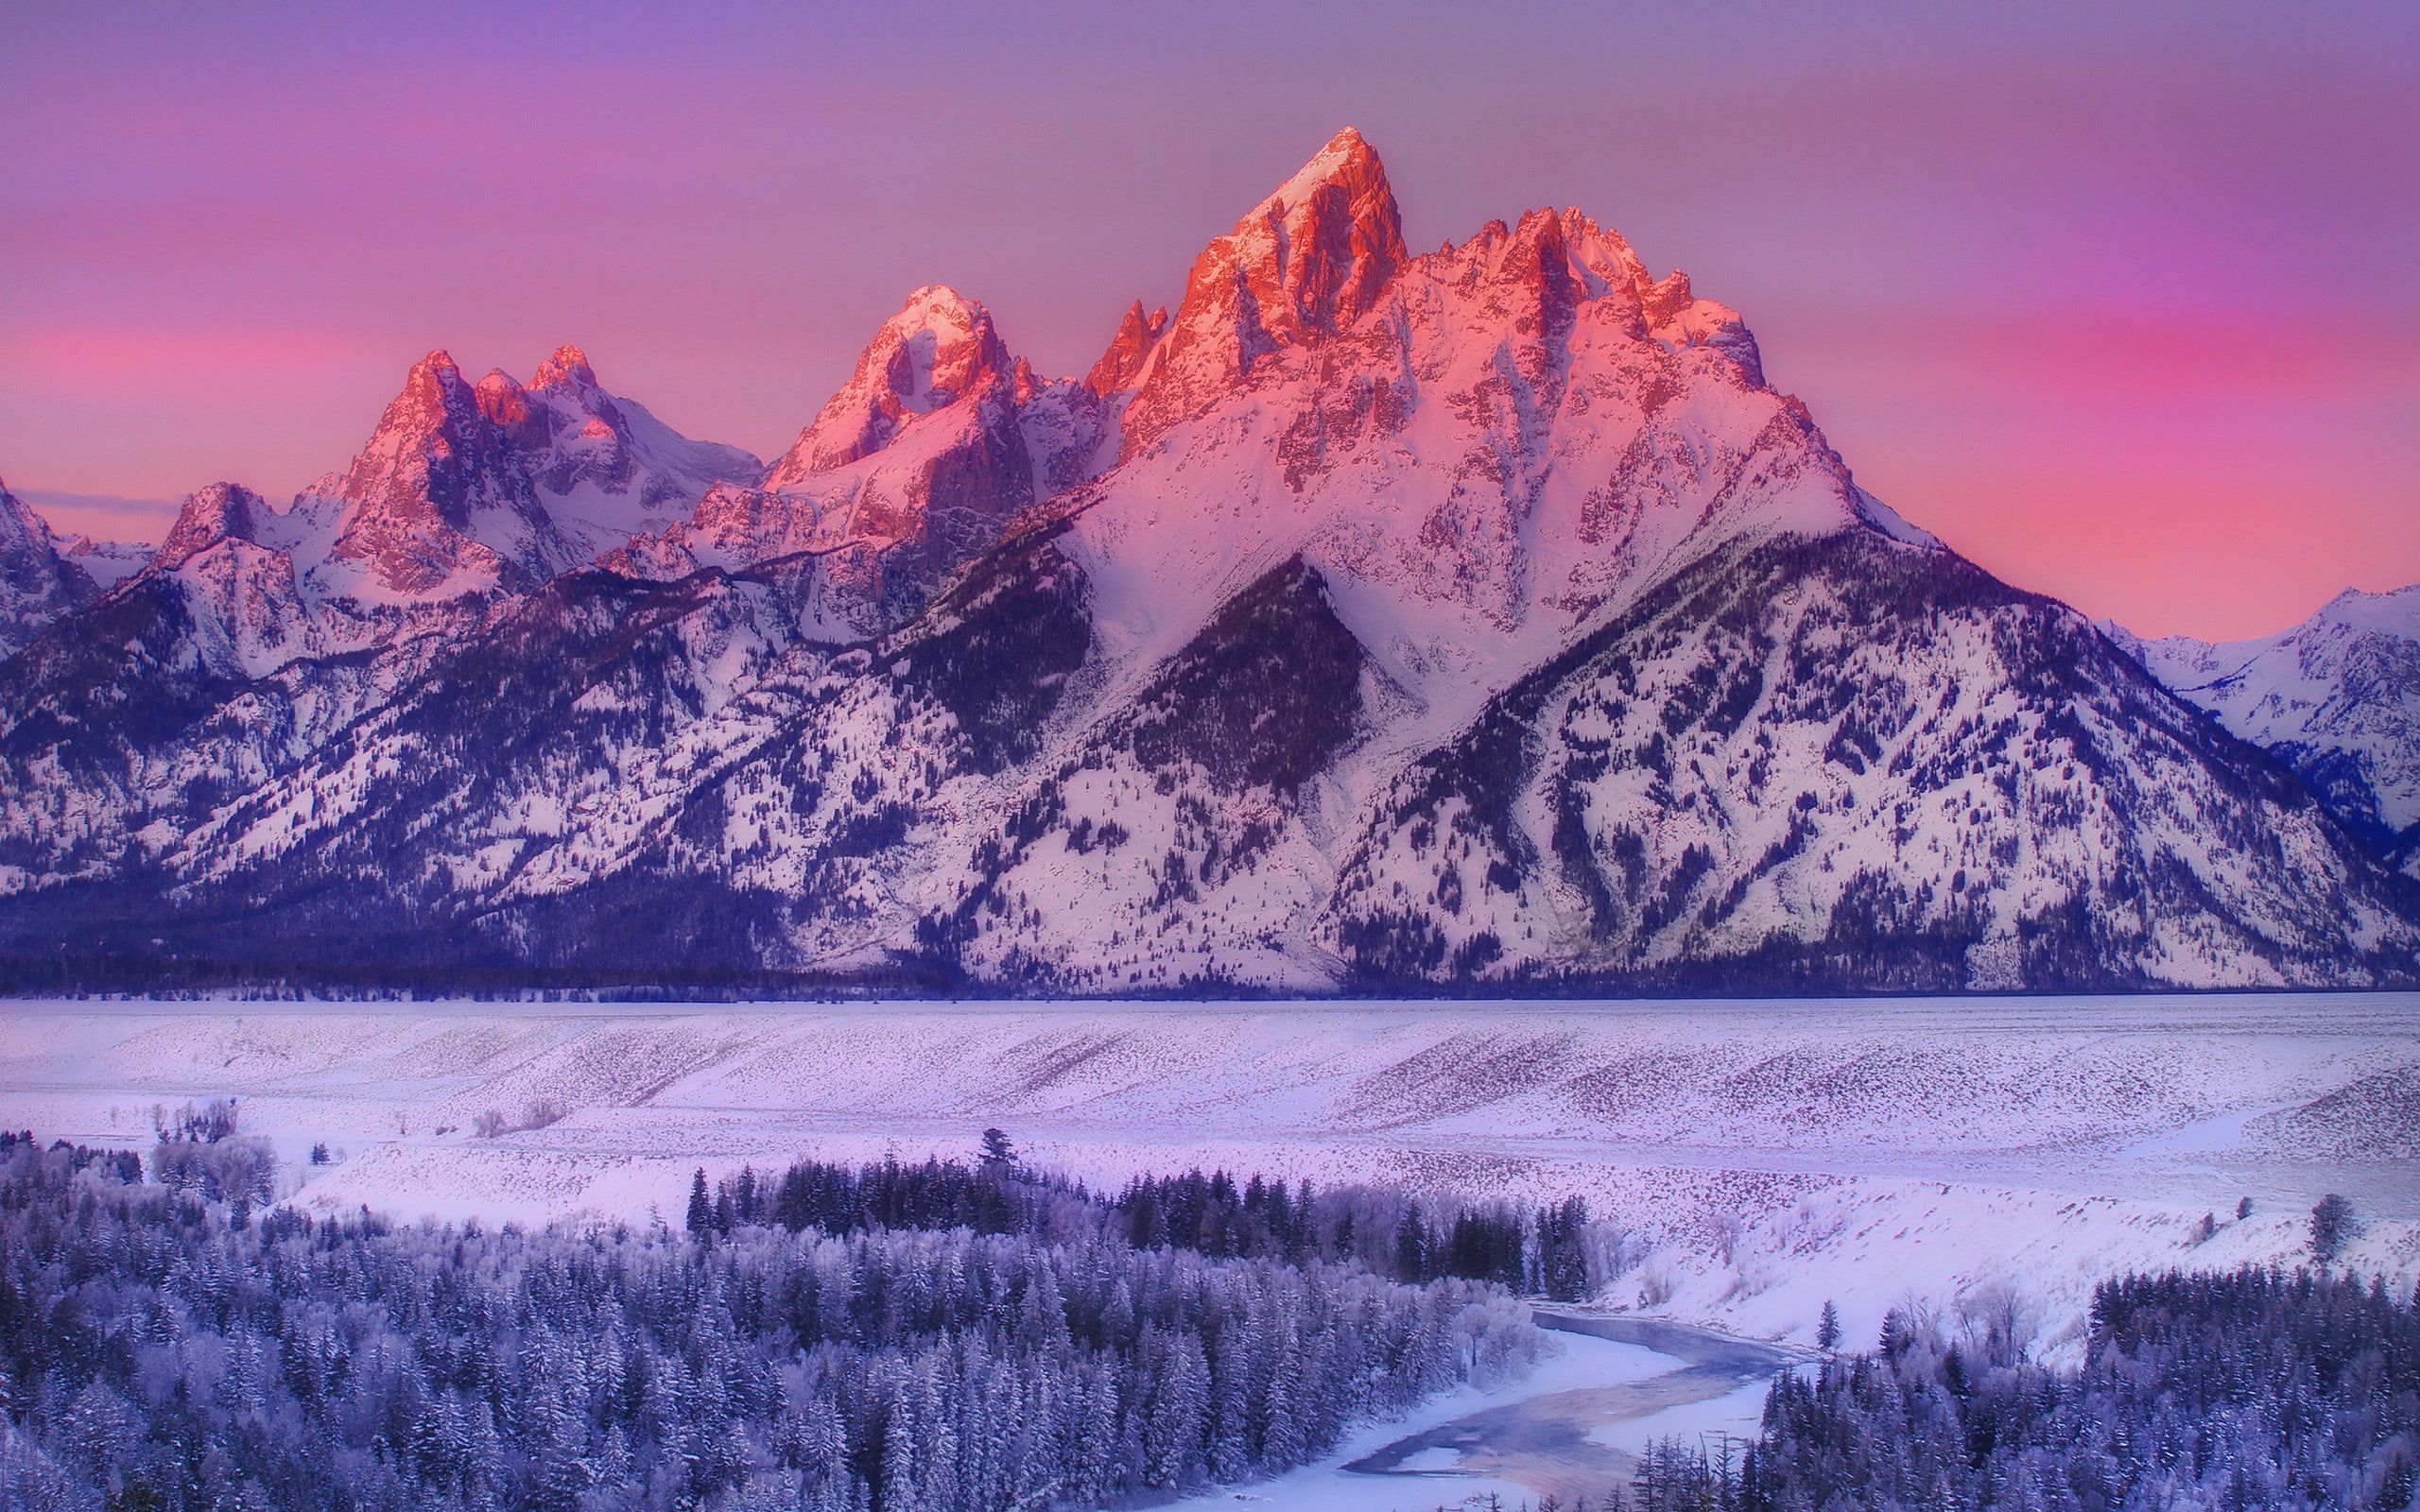 Snow Coned Mountain Snow Covered Mountains At Golden Hour Mountains Winter Landscape Snow Sunl Winter Wallpaper Colorado Winter Colorado Mountains Winter Hd wallpaper river mountain snow trees